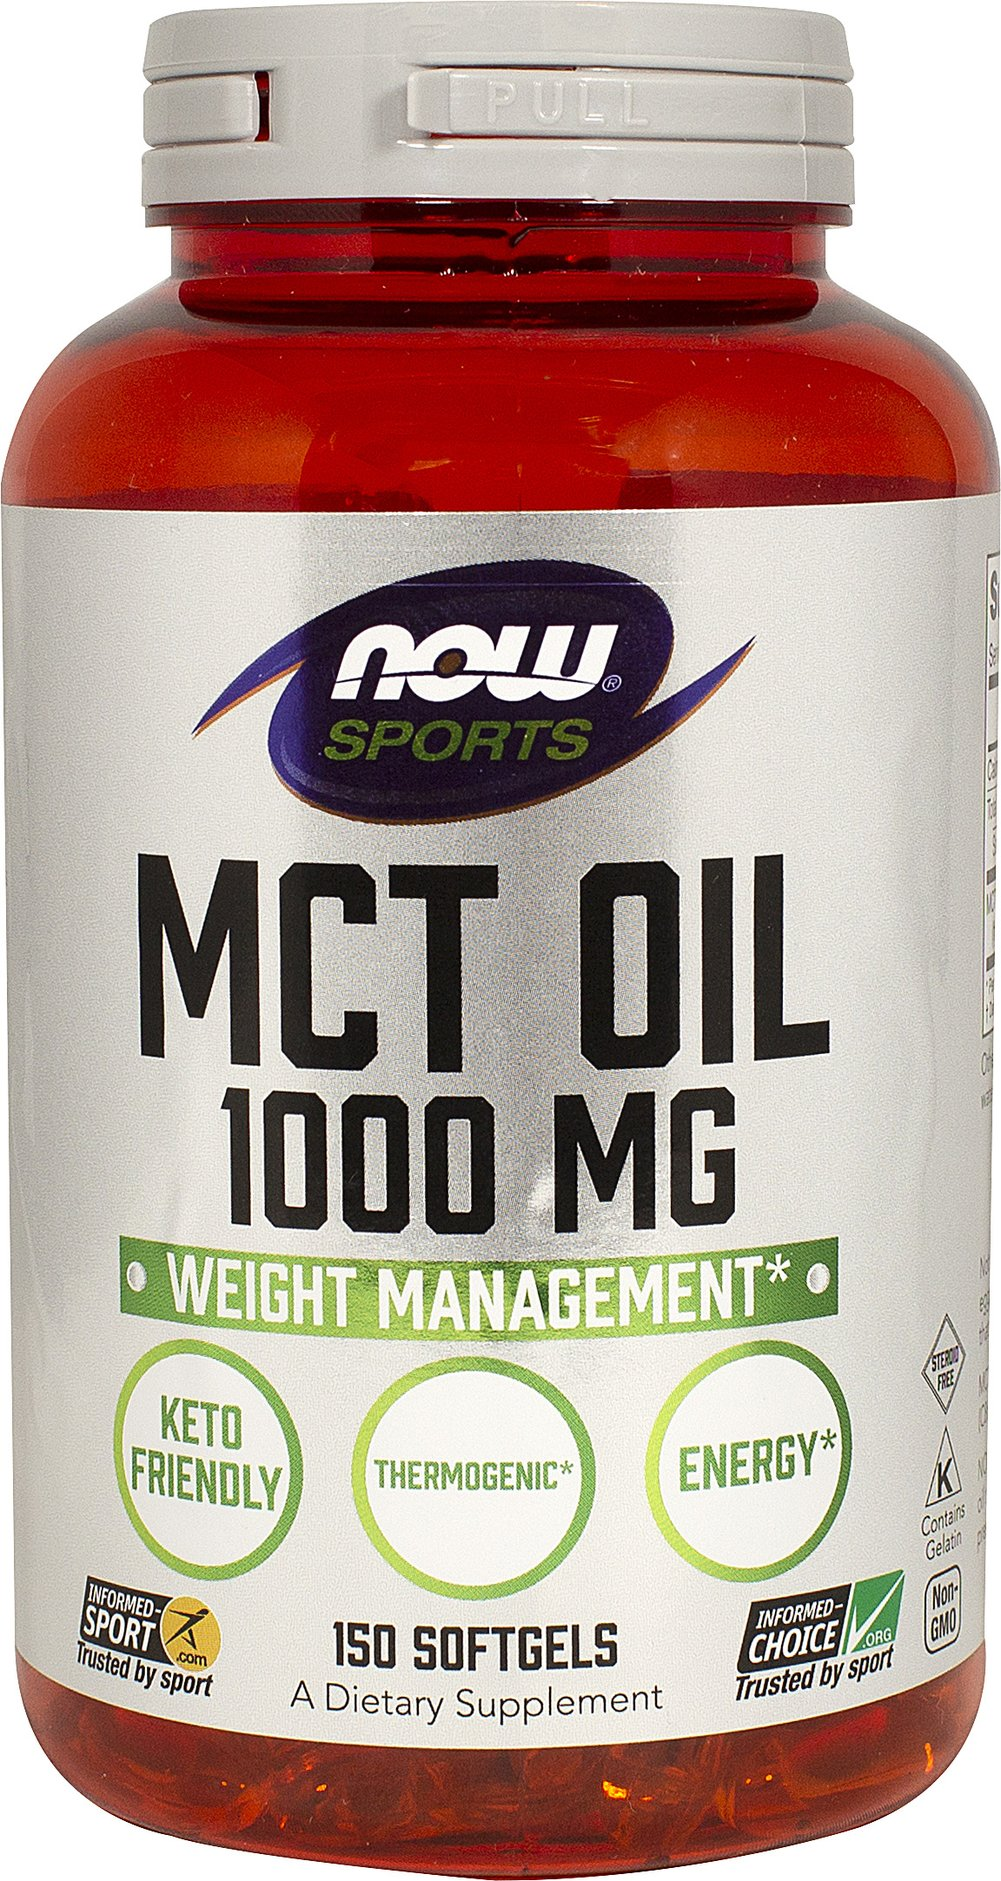 MCT Oil 1000 mg Thumbnail Alternate Bottle View